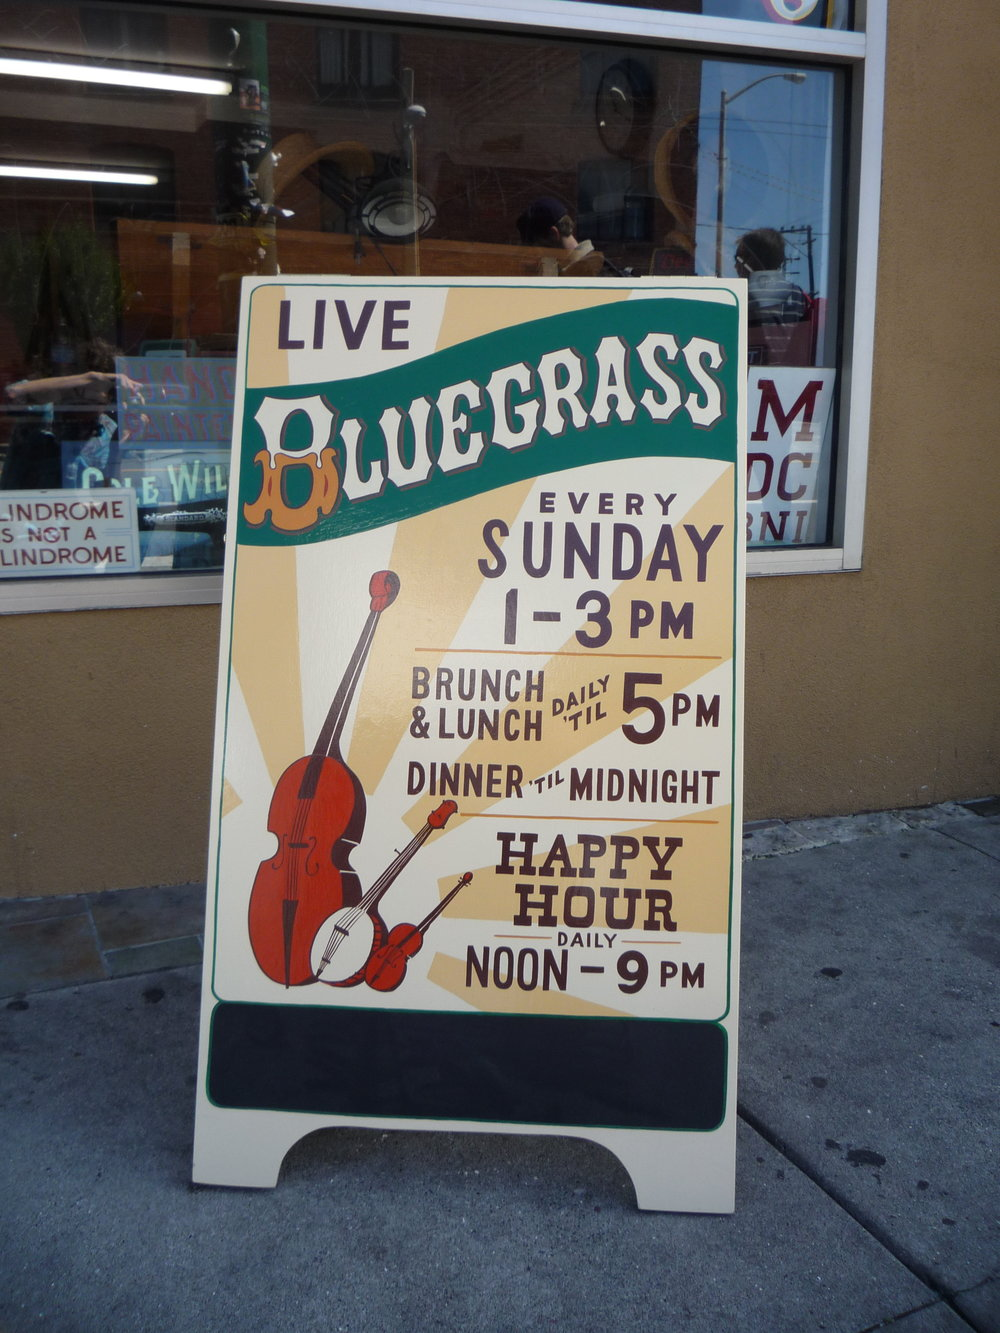 A-FRAME-live-bluegrass-at-the-buckshot-bar_4746995943_o.jpg